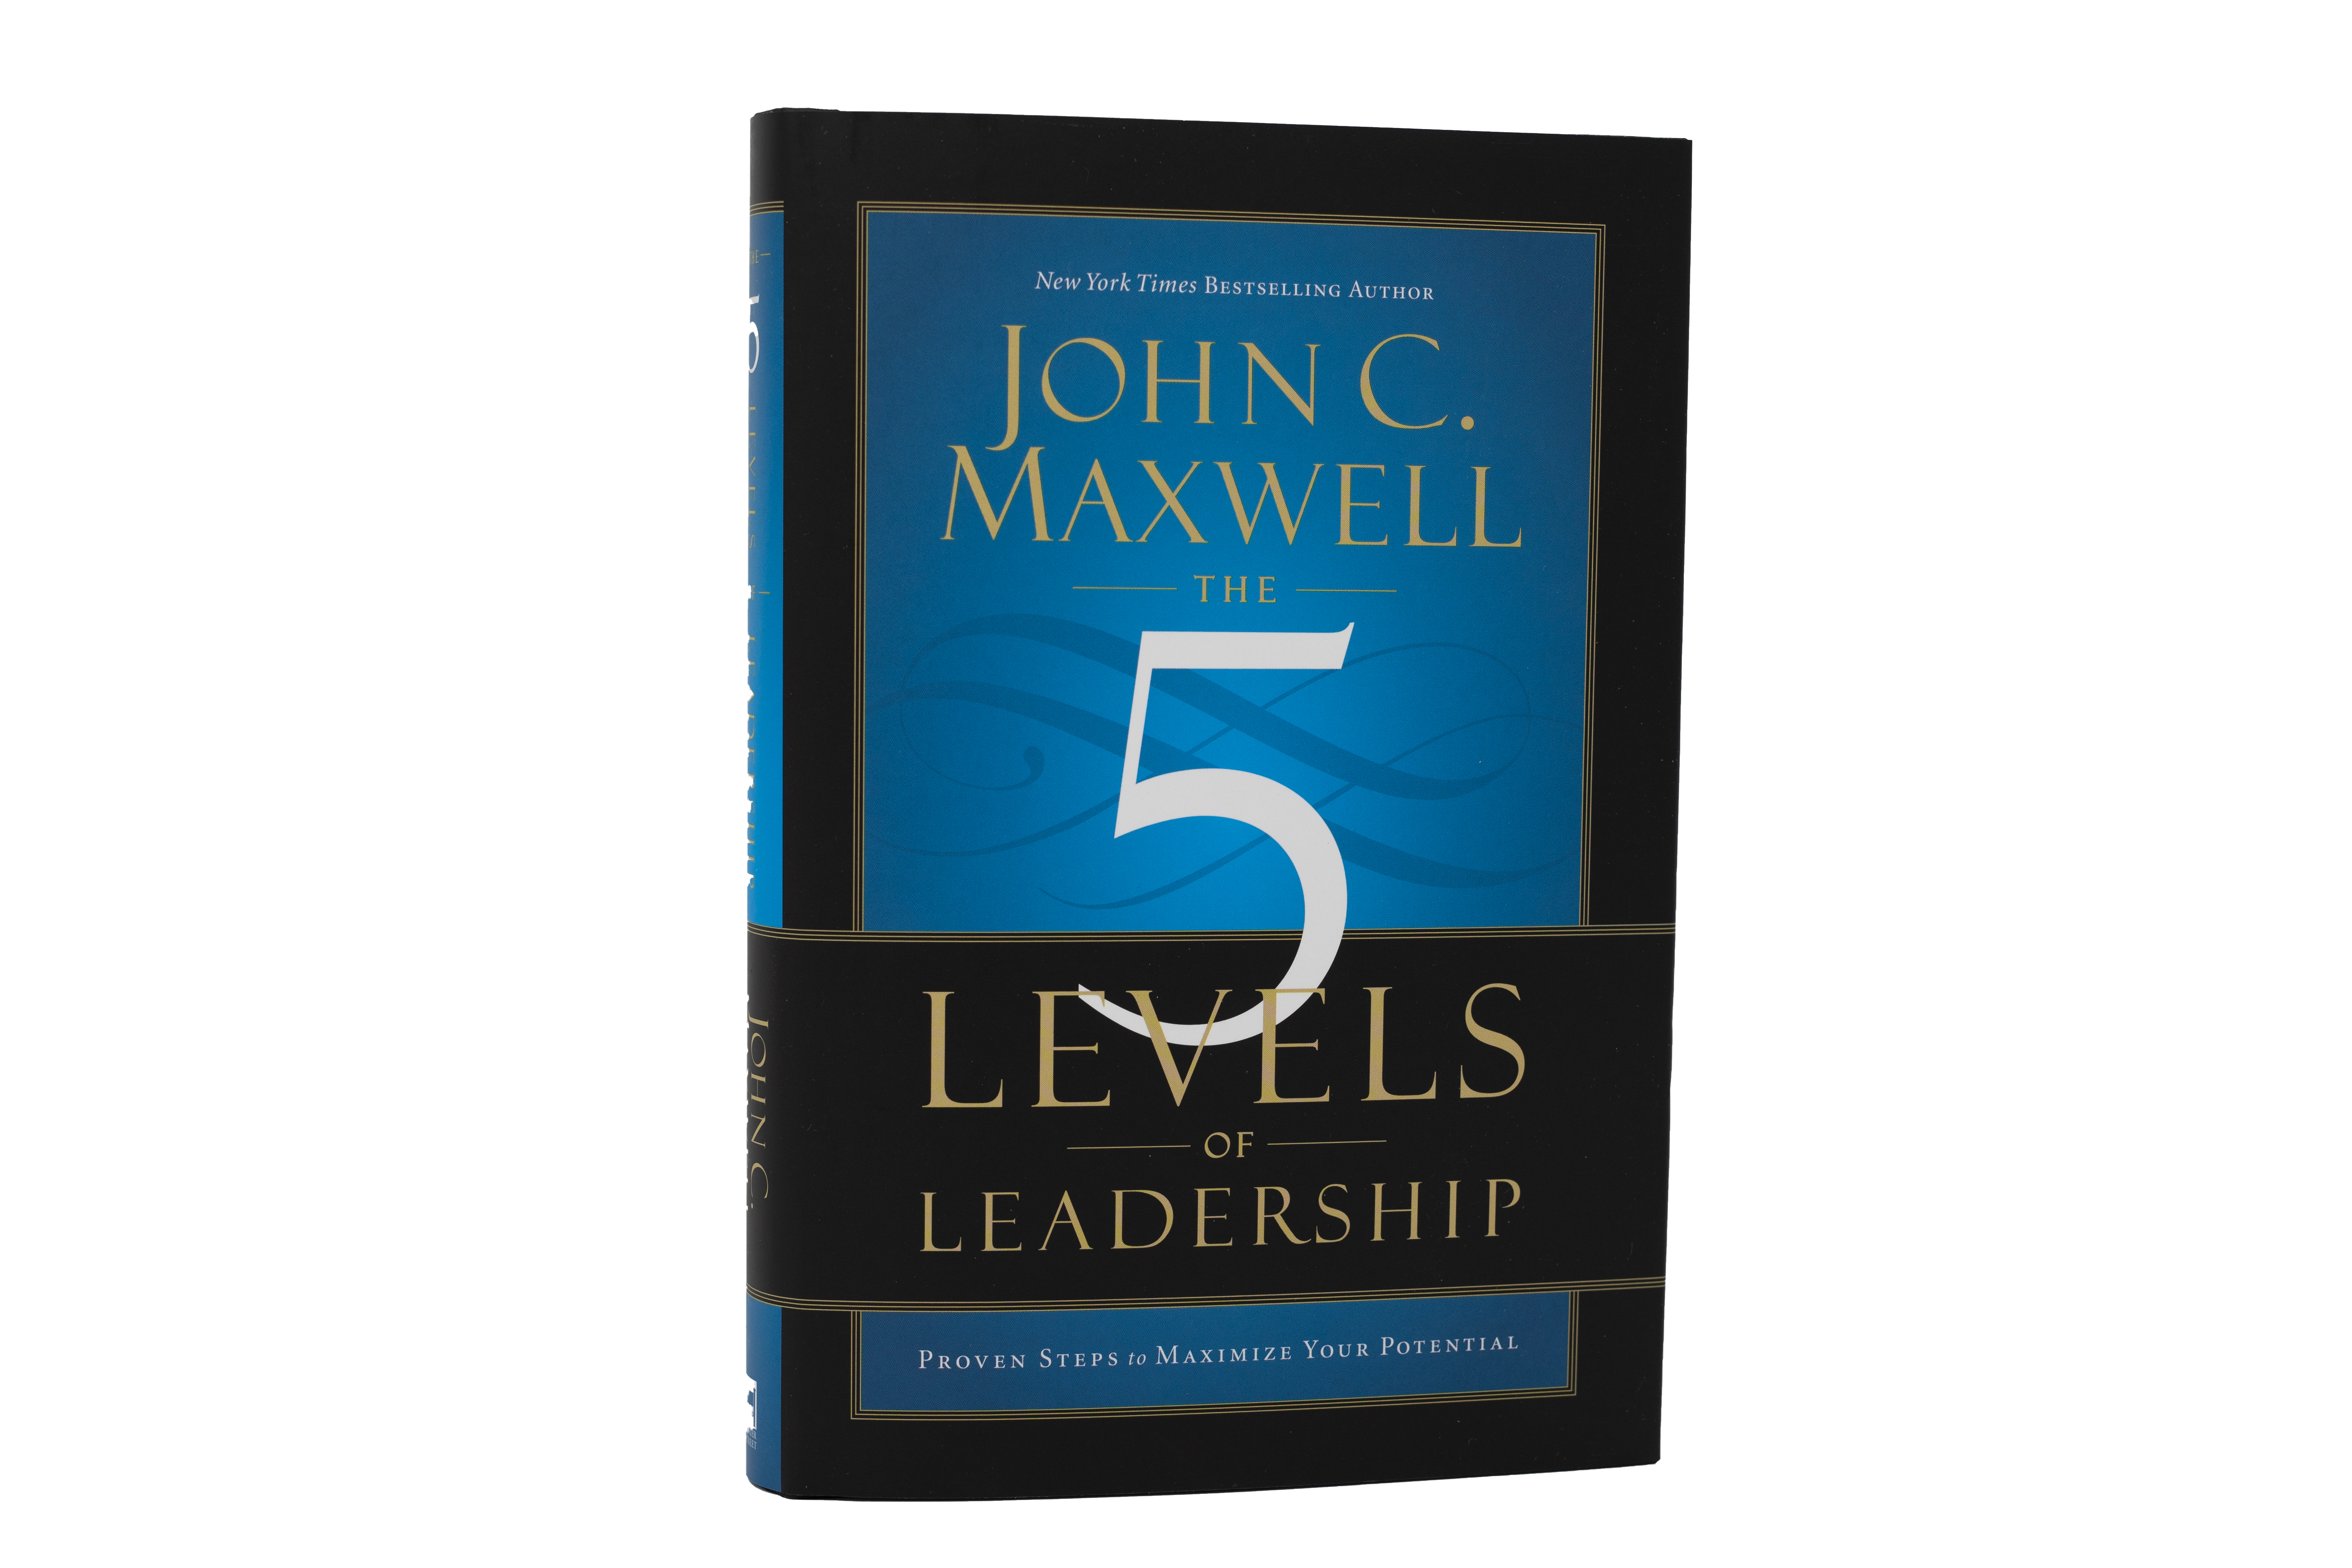 The 5 Levels of Leadership [Hardcover]